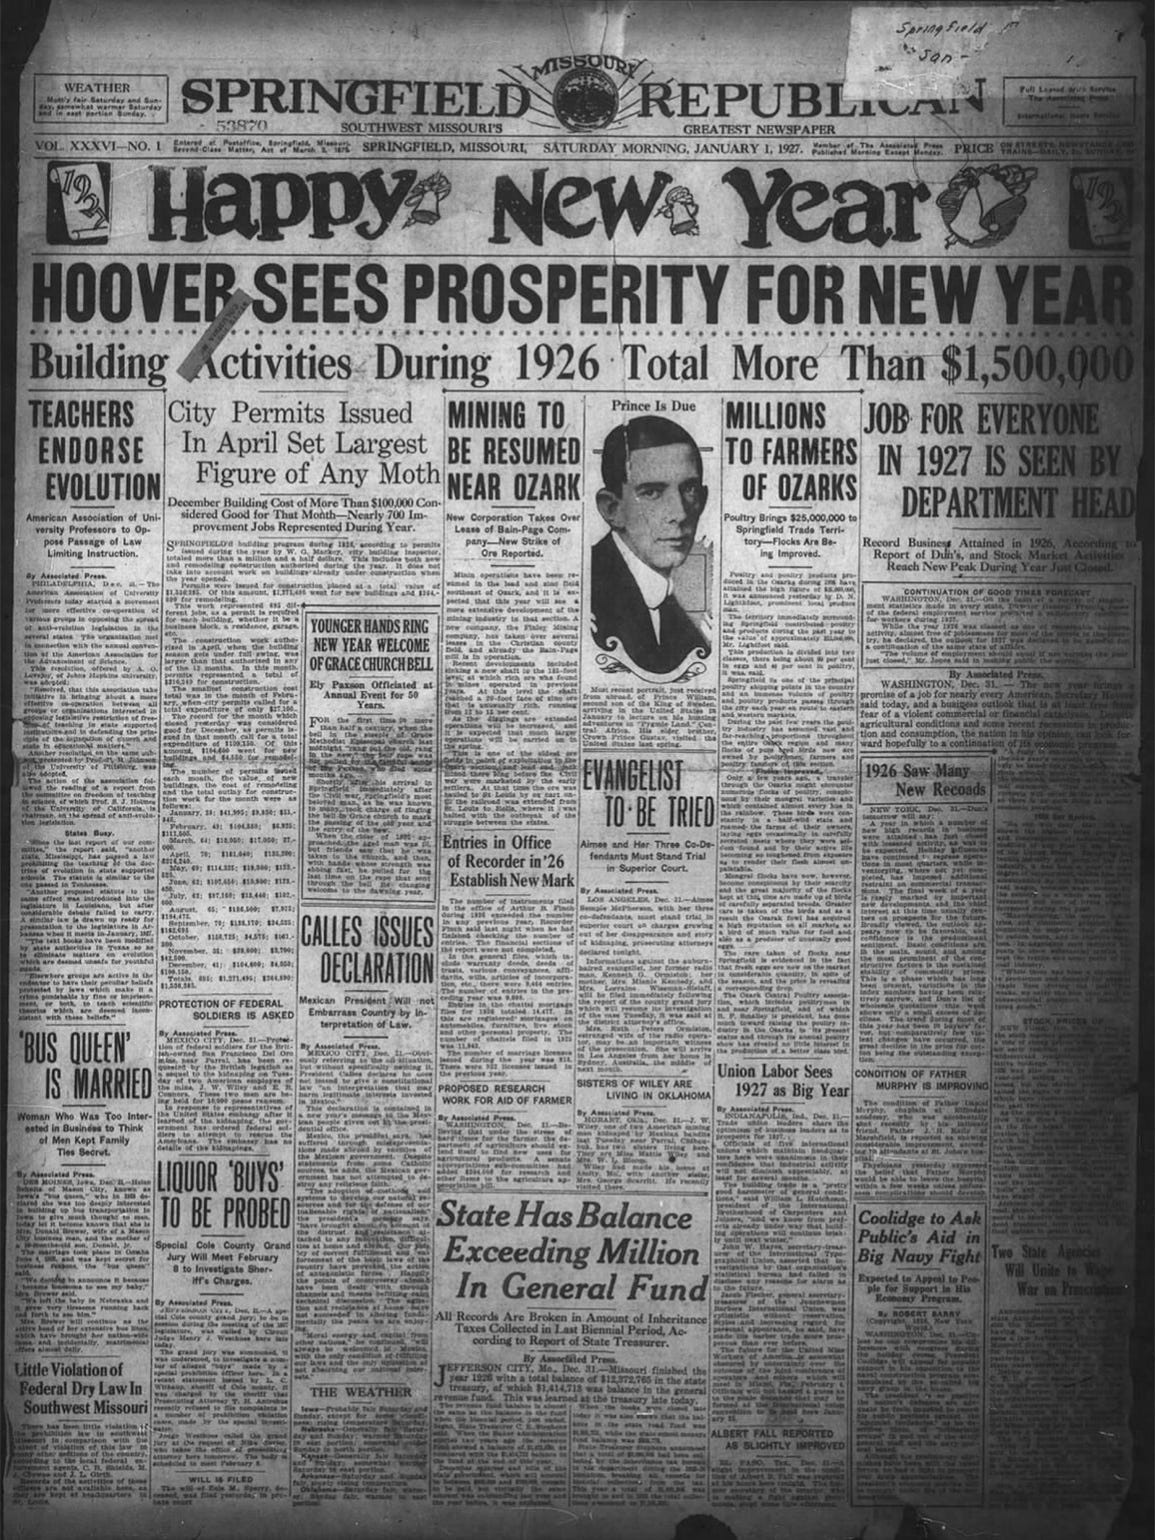 Jan. 1, 1927 edition of the Republican.